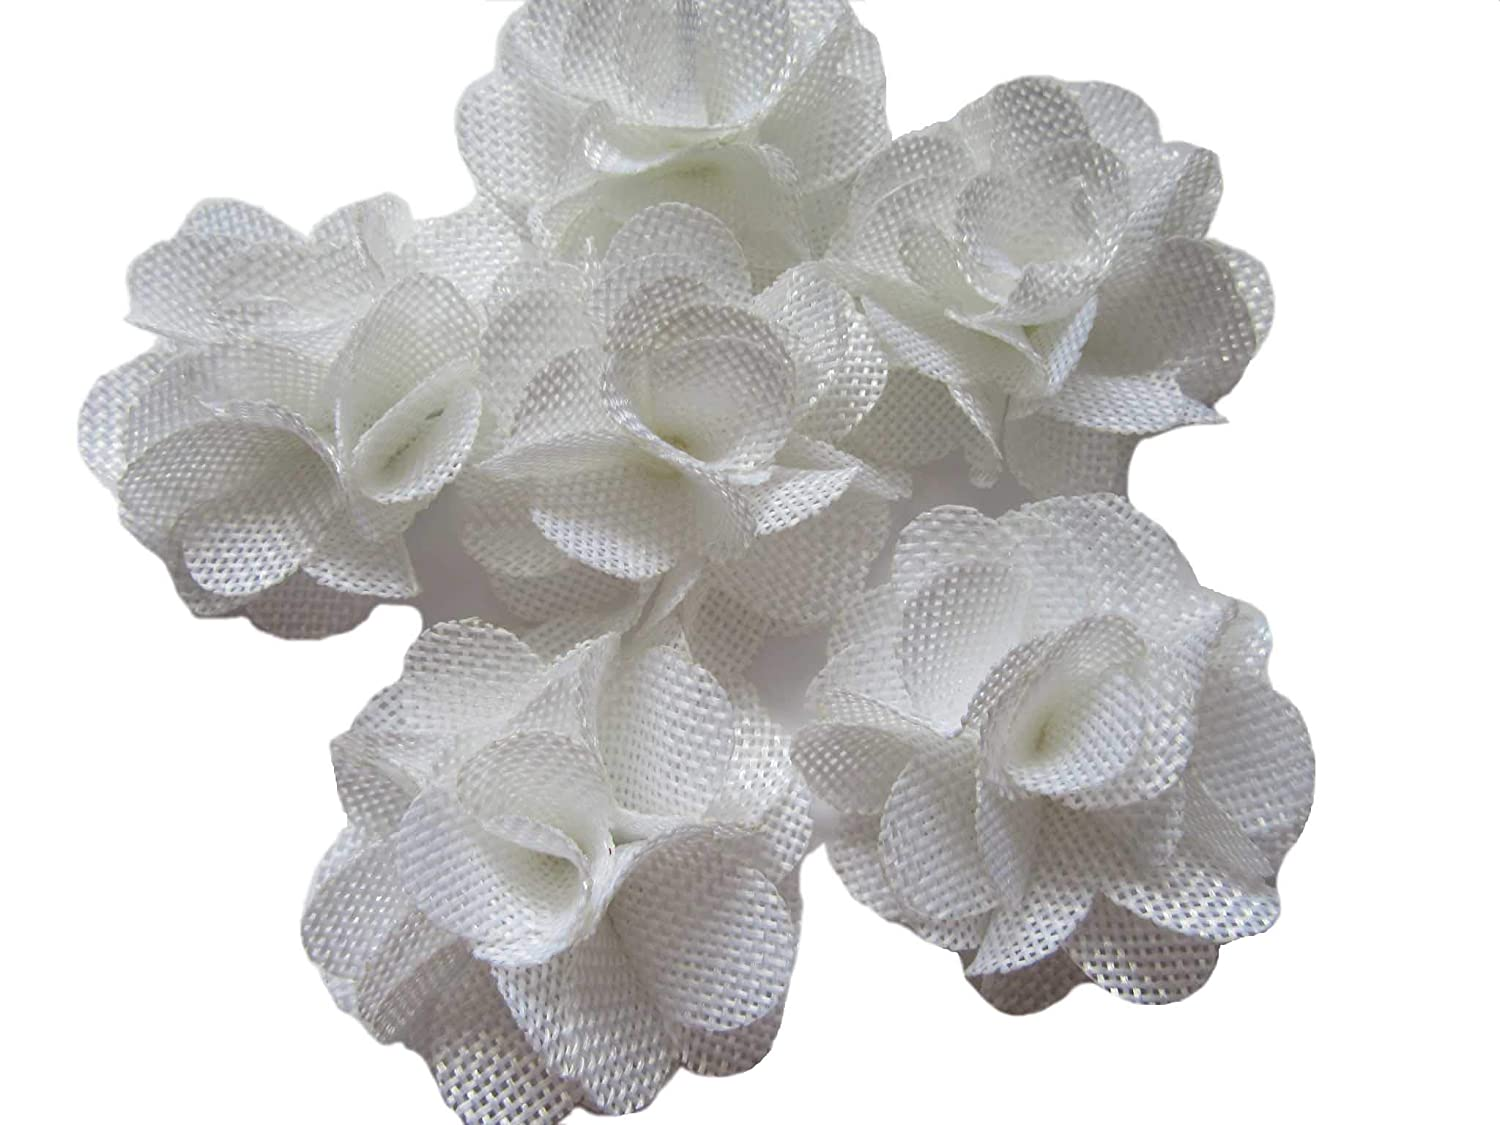 2.25 White, About 2.25 YYCRAFT 15pcs Burlap Flower Roses,3D Fabric Flowers for Headbands Hair Accessory DIY Crafts//Wedding Party Decorations//Scrapbooking Embellishments